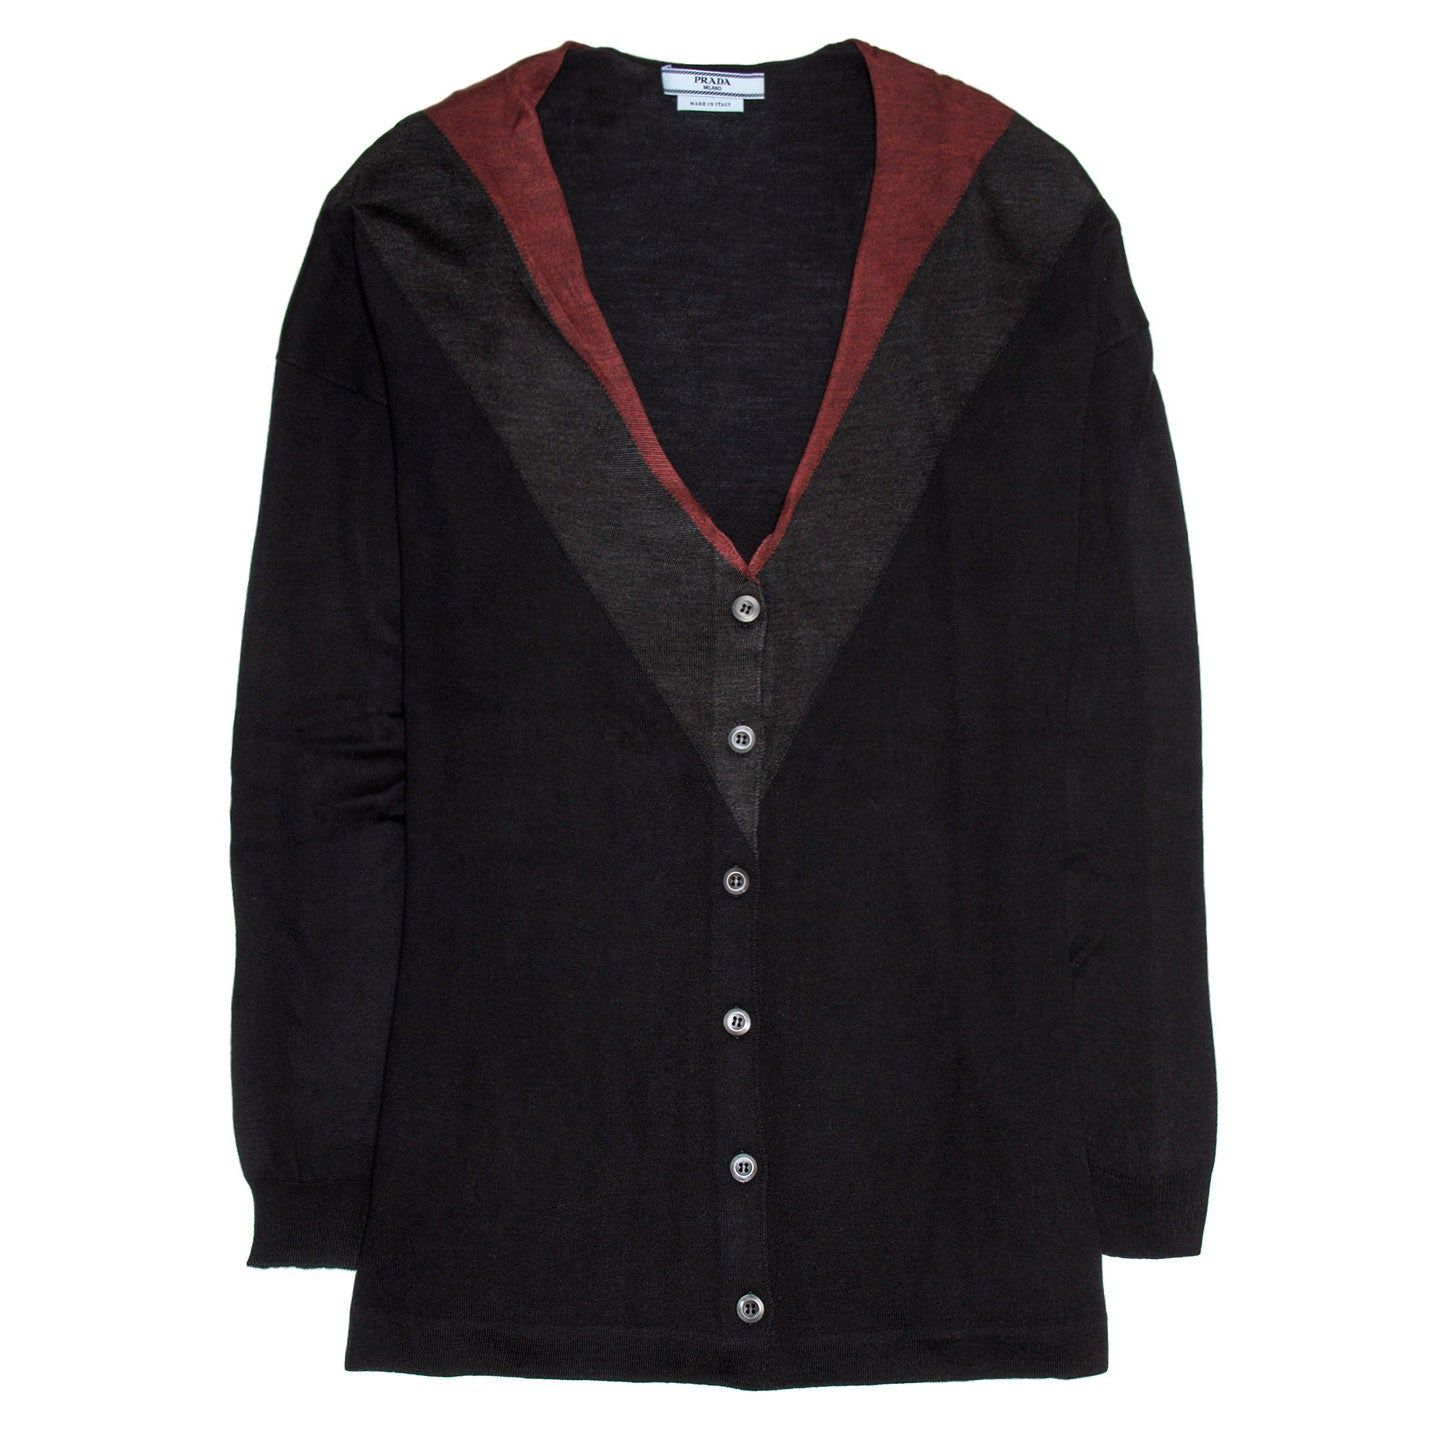 Find an authentic preowned Prada Midnight Blue Red & Grey Cardigan size 44 (Italian) at BunnyJack, where up to 50% of each sale price is donated to charity.